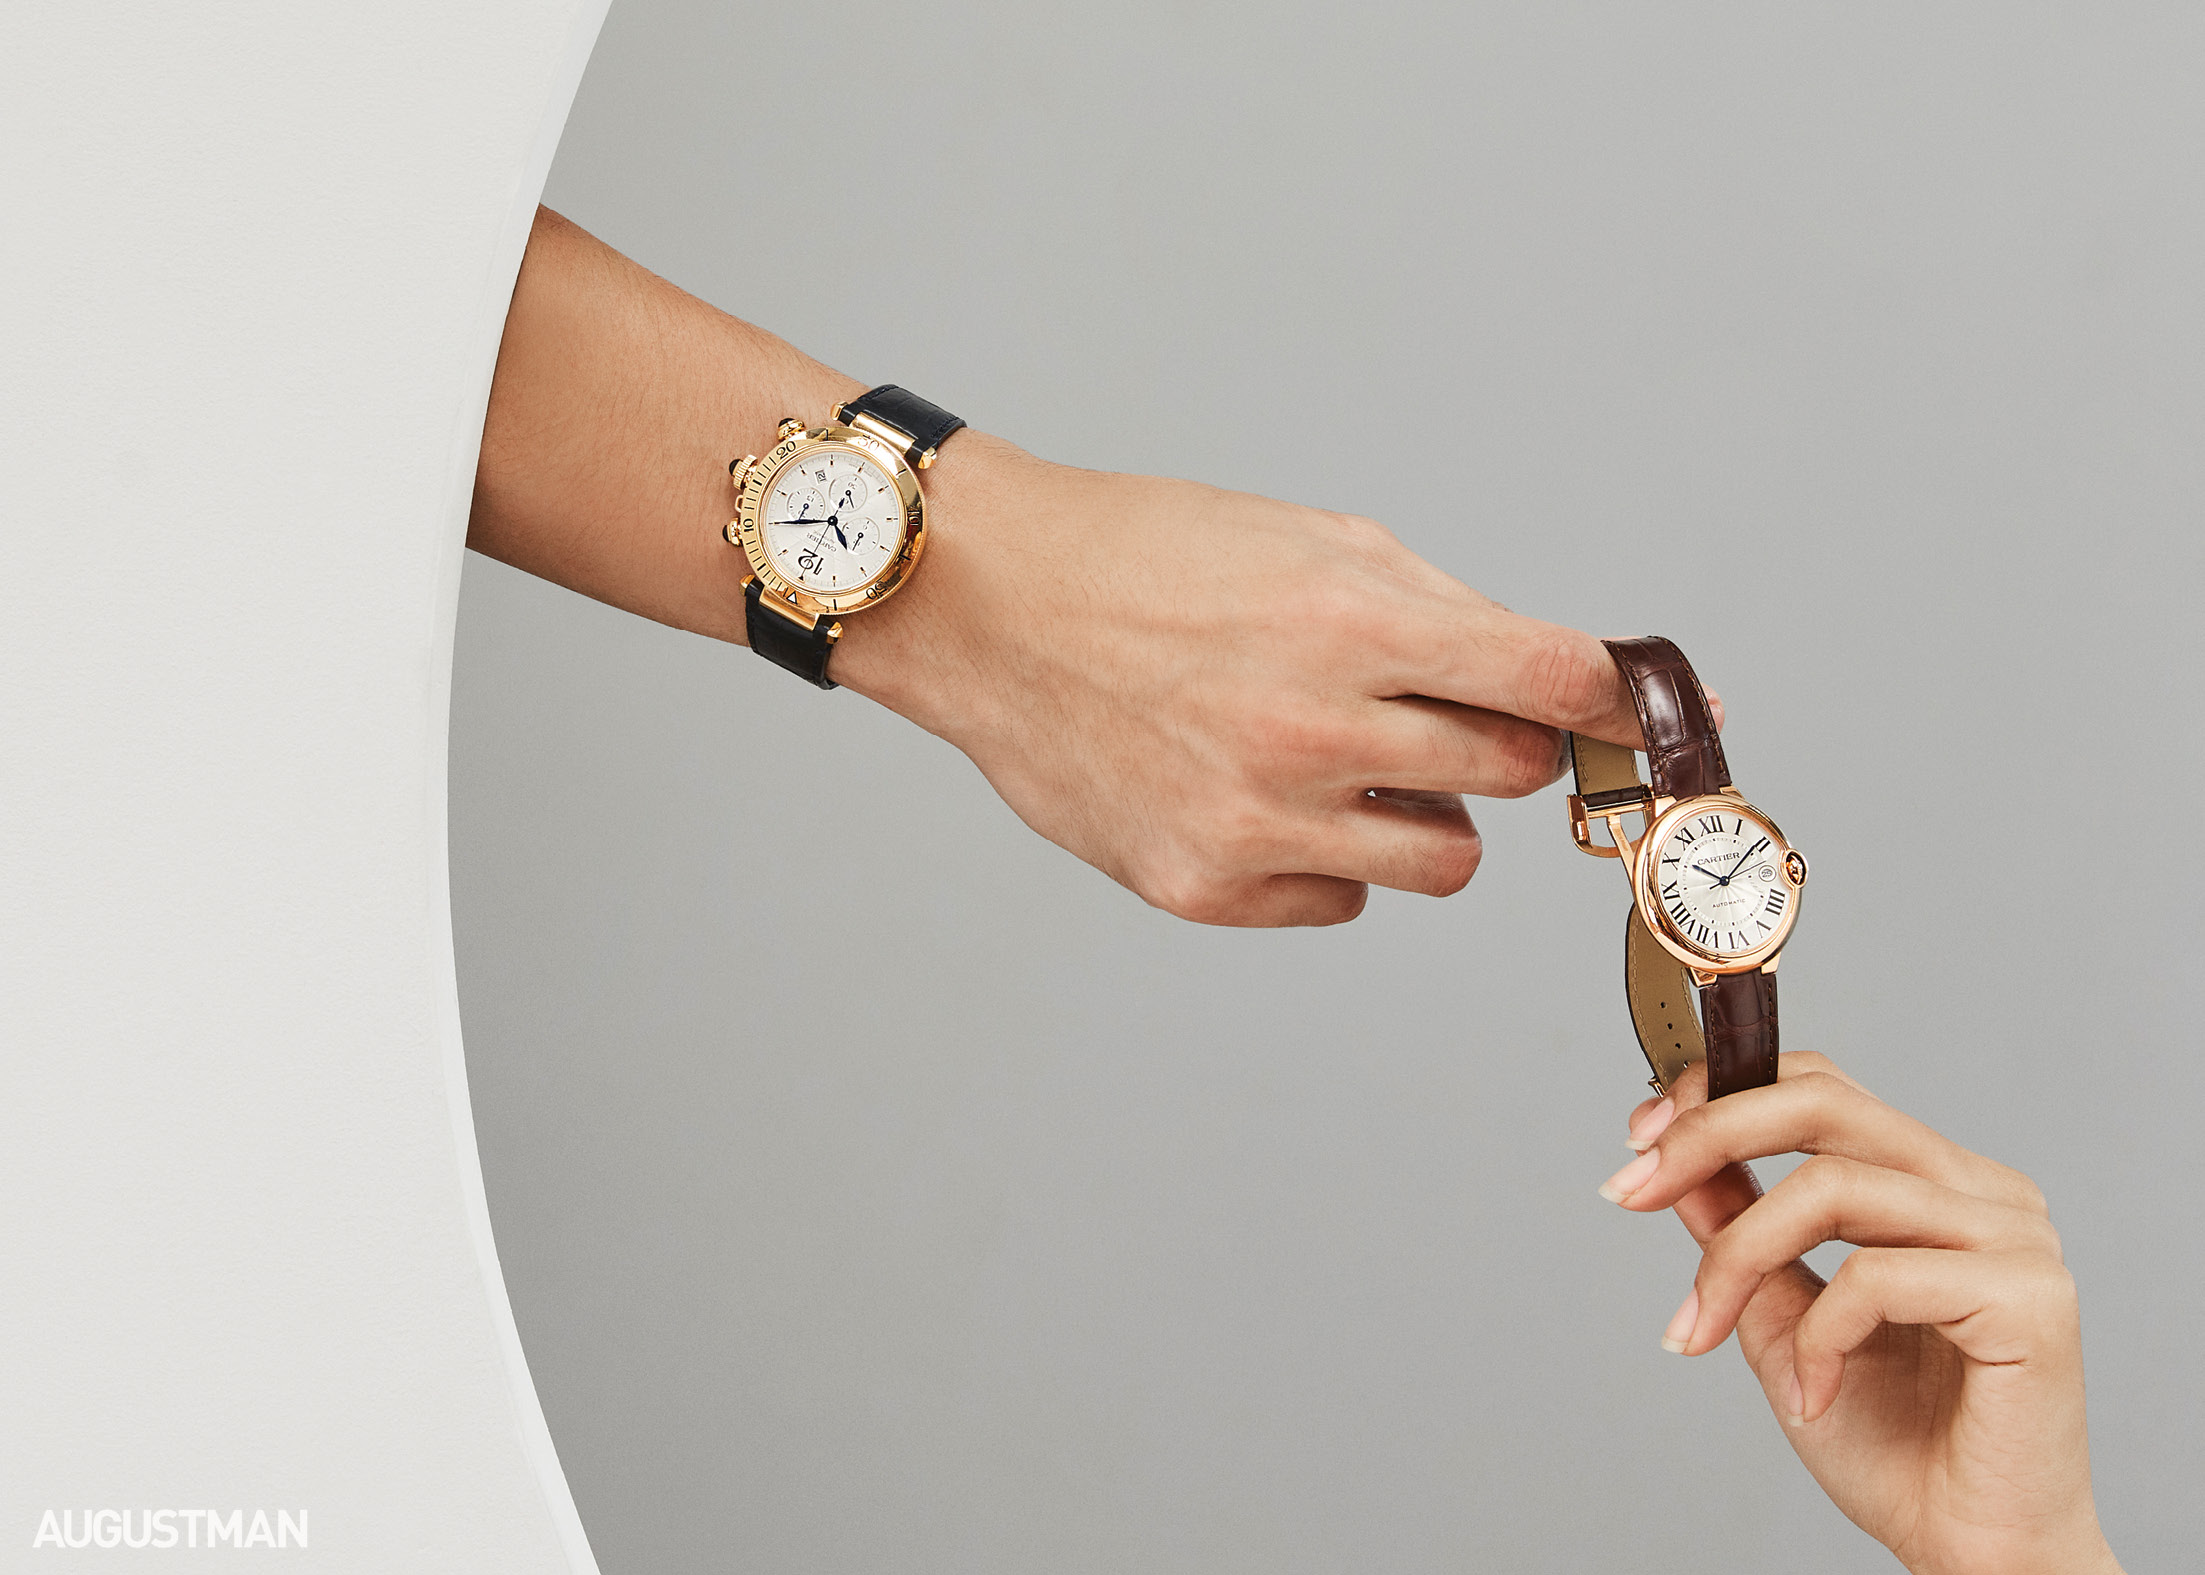 Cartier Gives Us A Touch Of Elegance With Its Luxury Timepieces